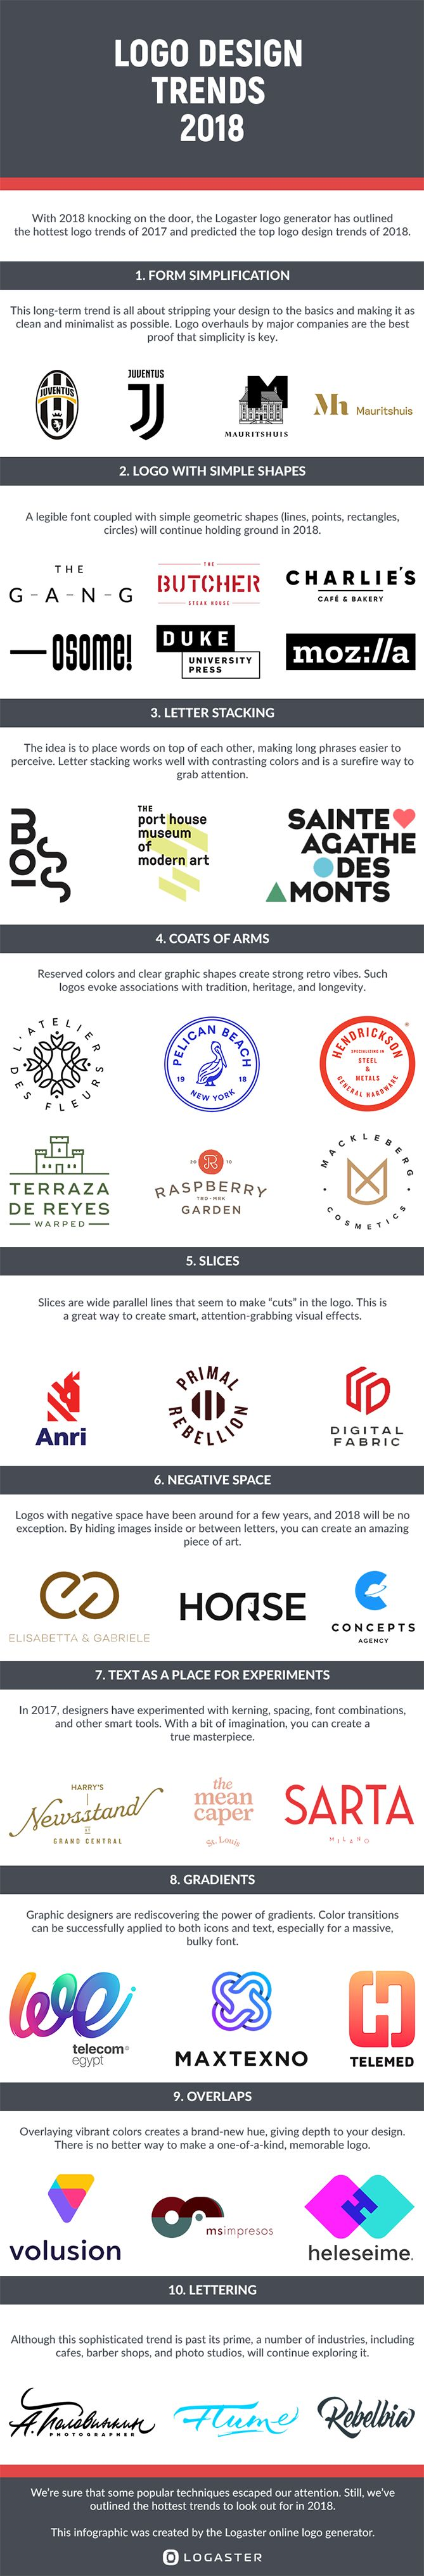 logo-trends-2018-UPDATED.png